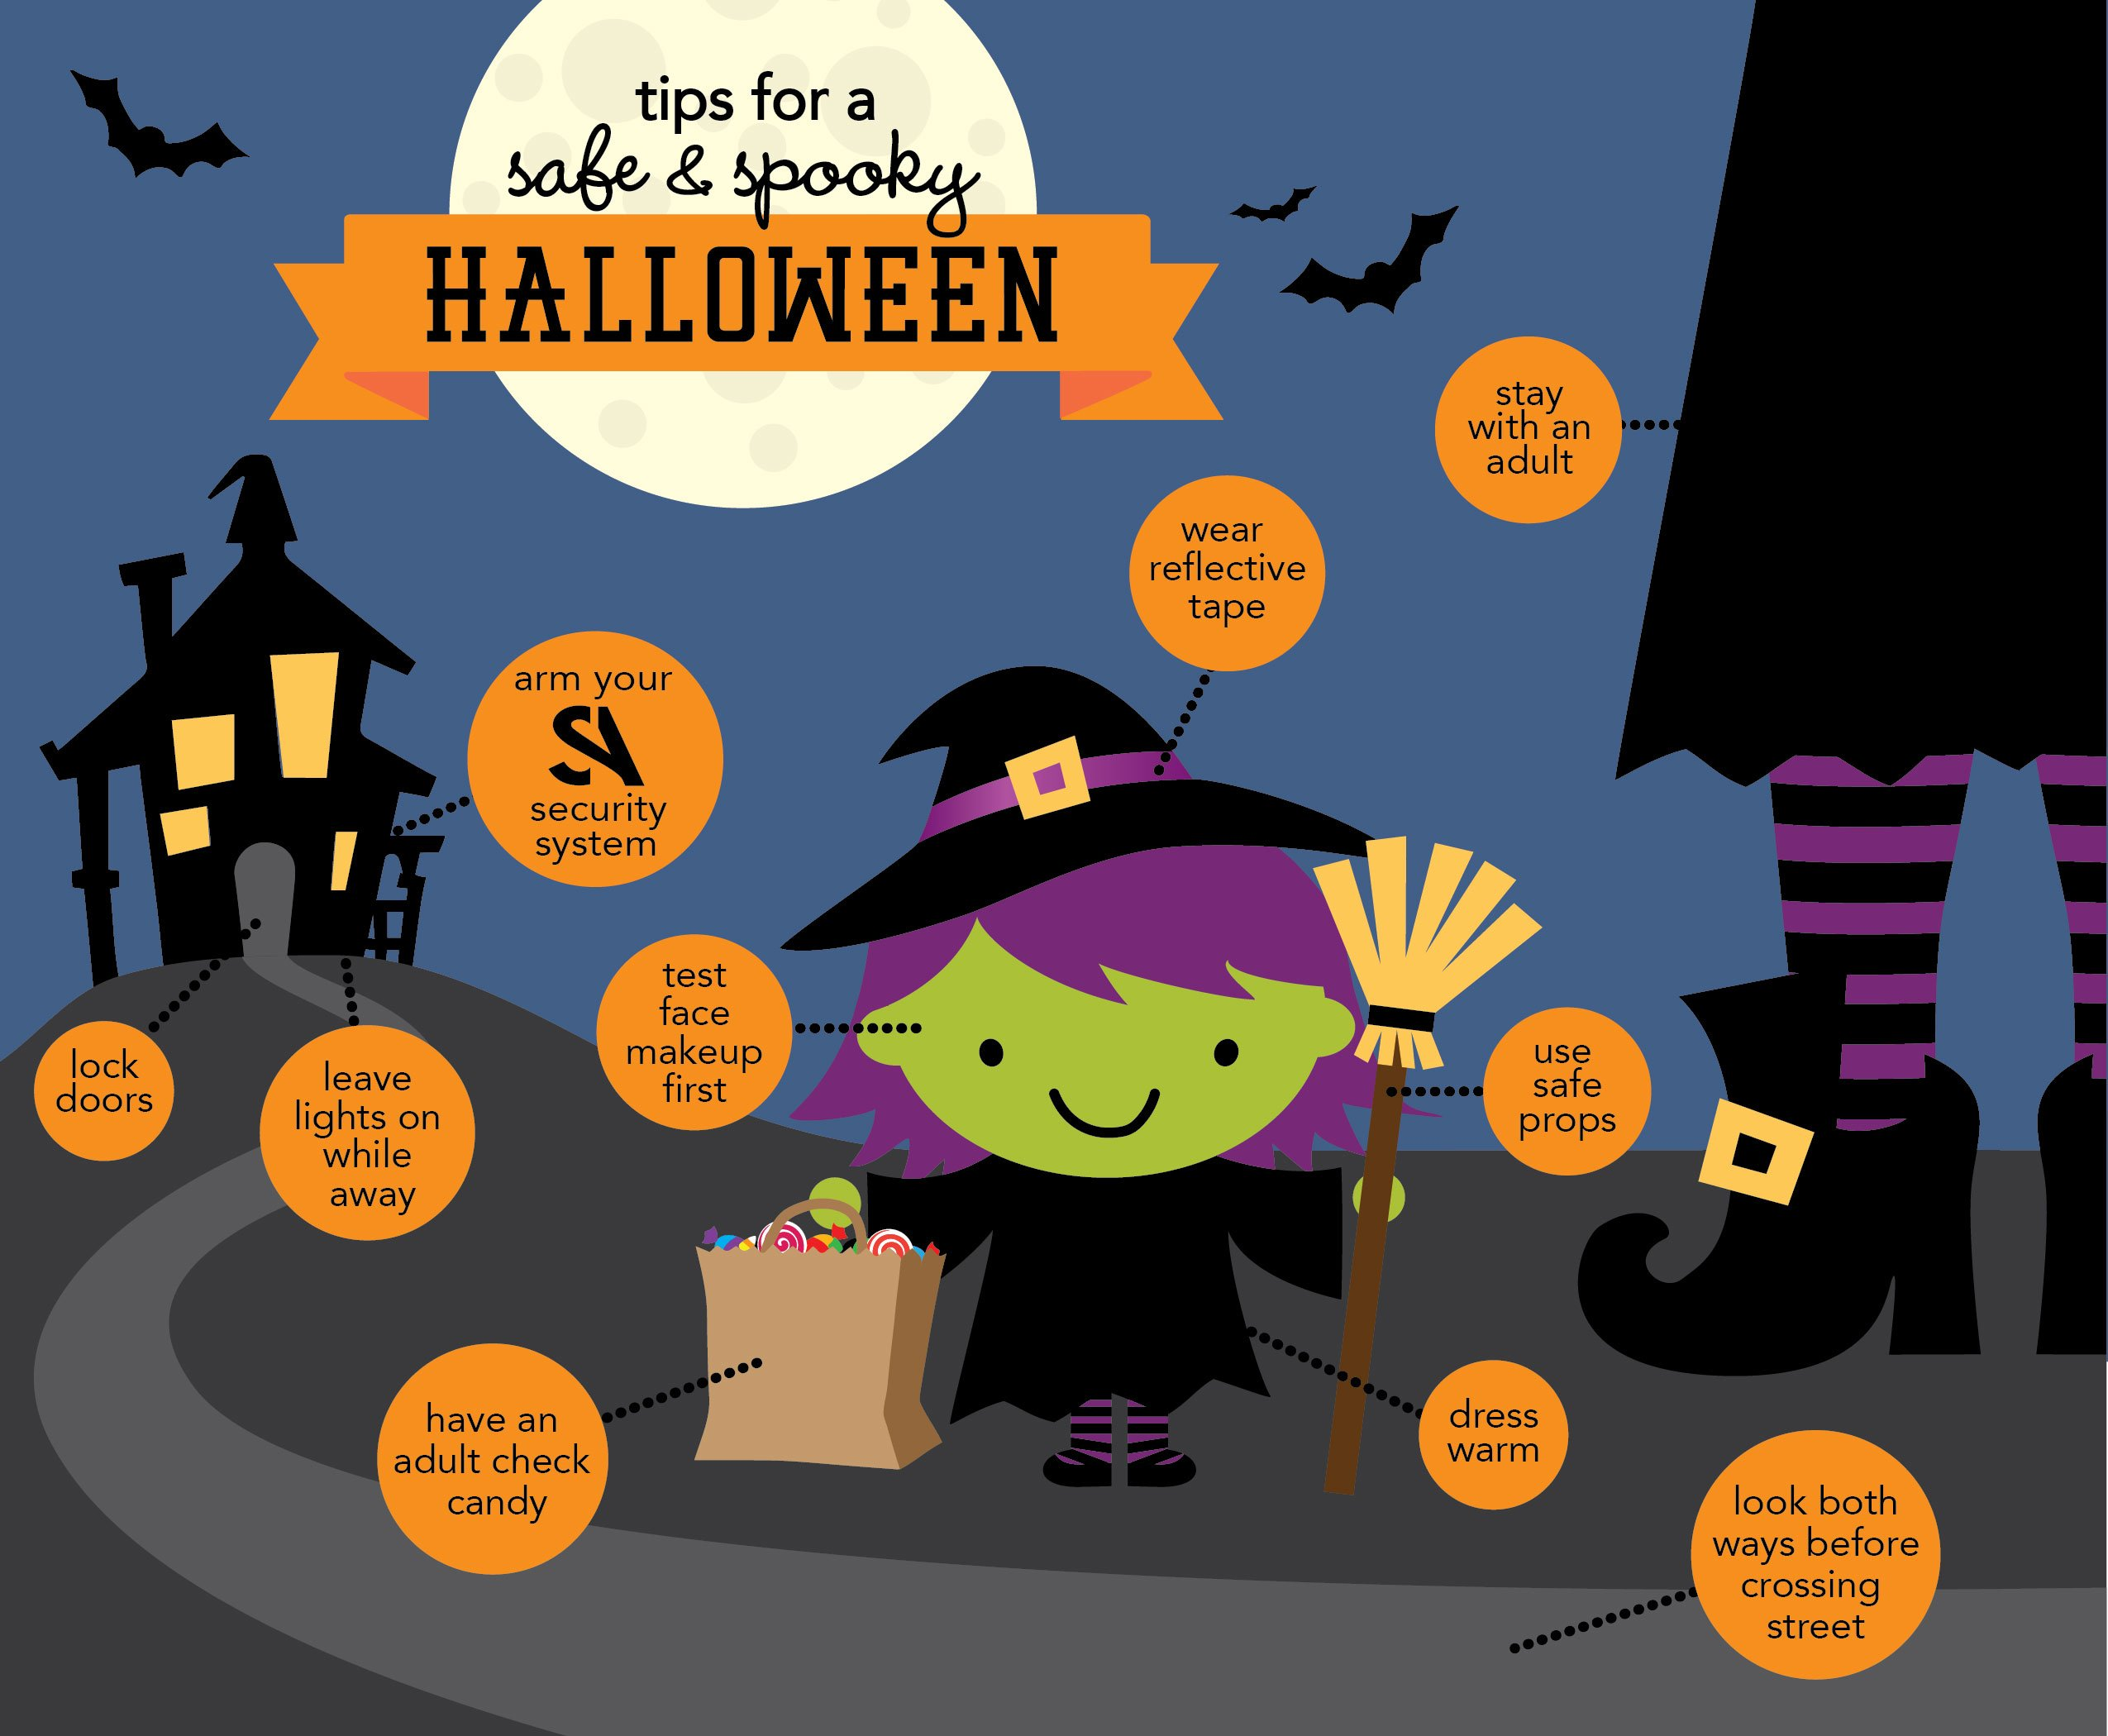 Tips for a Safe and Spooky Halloween